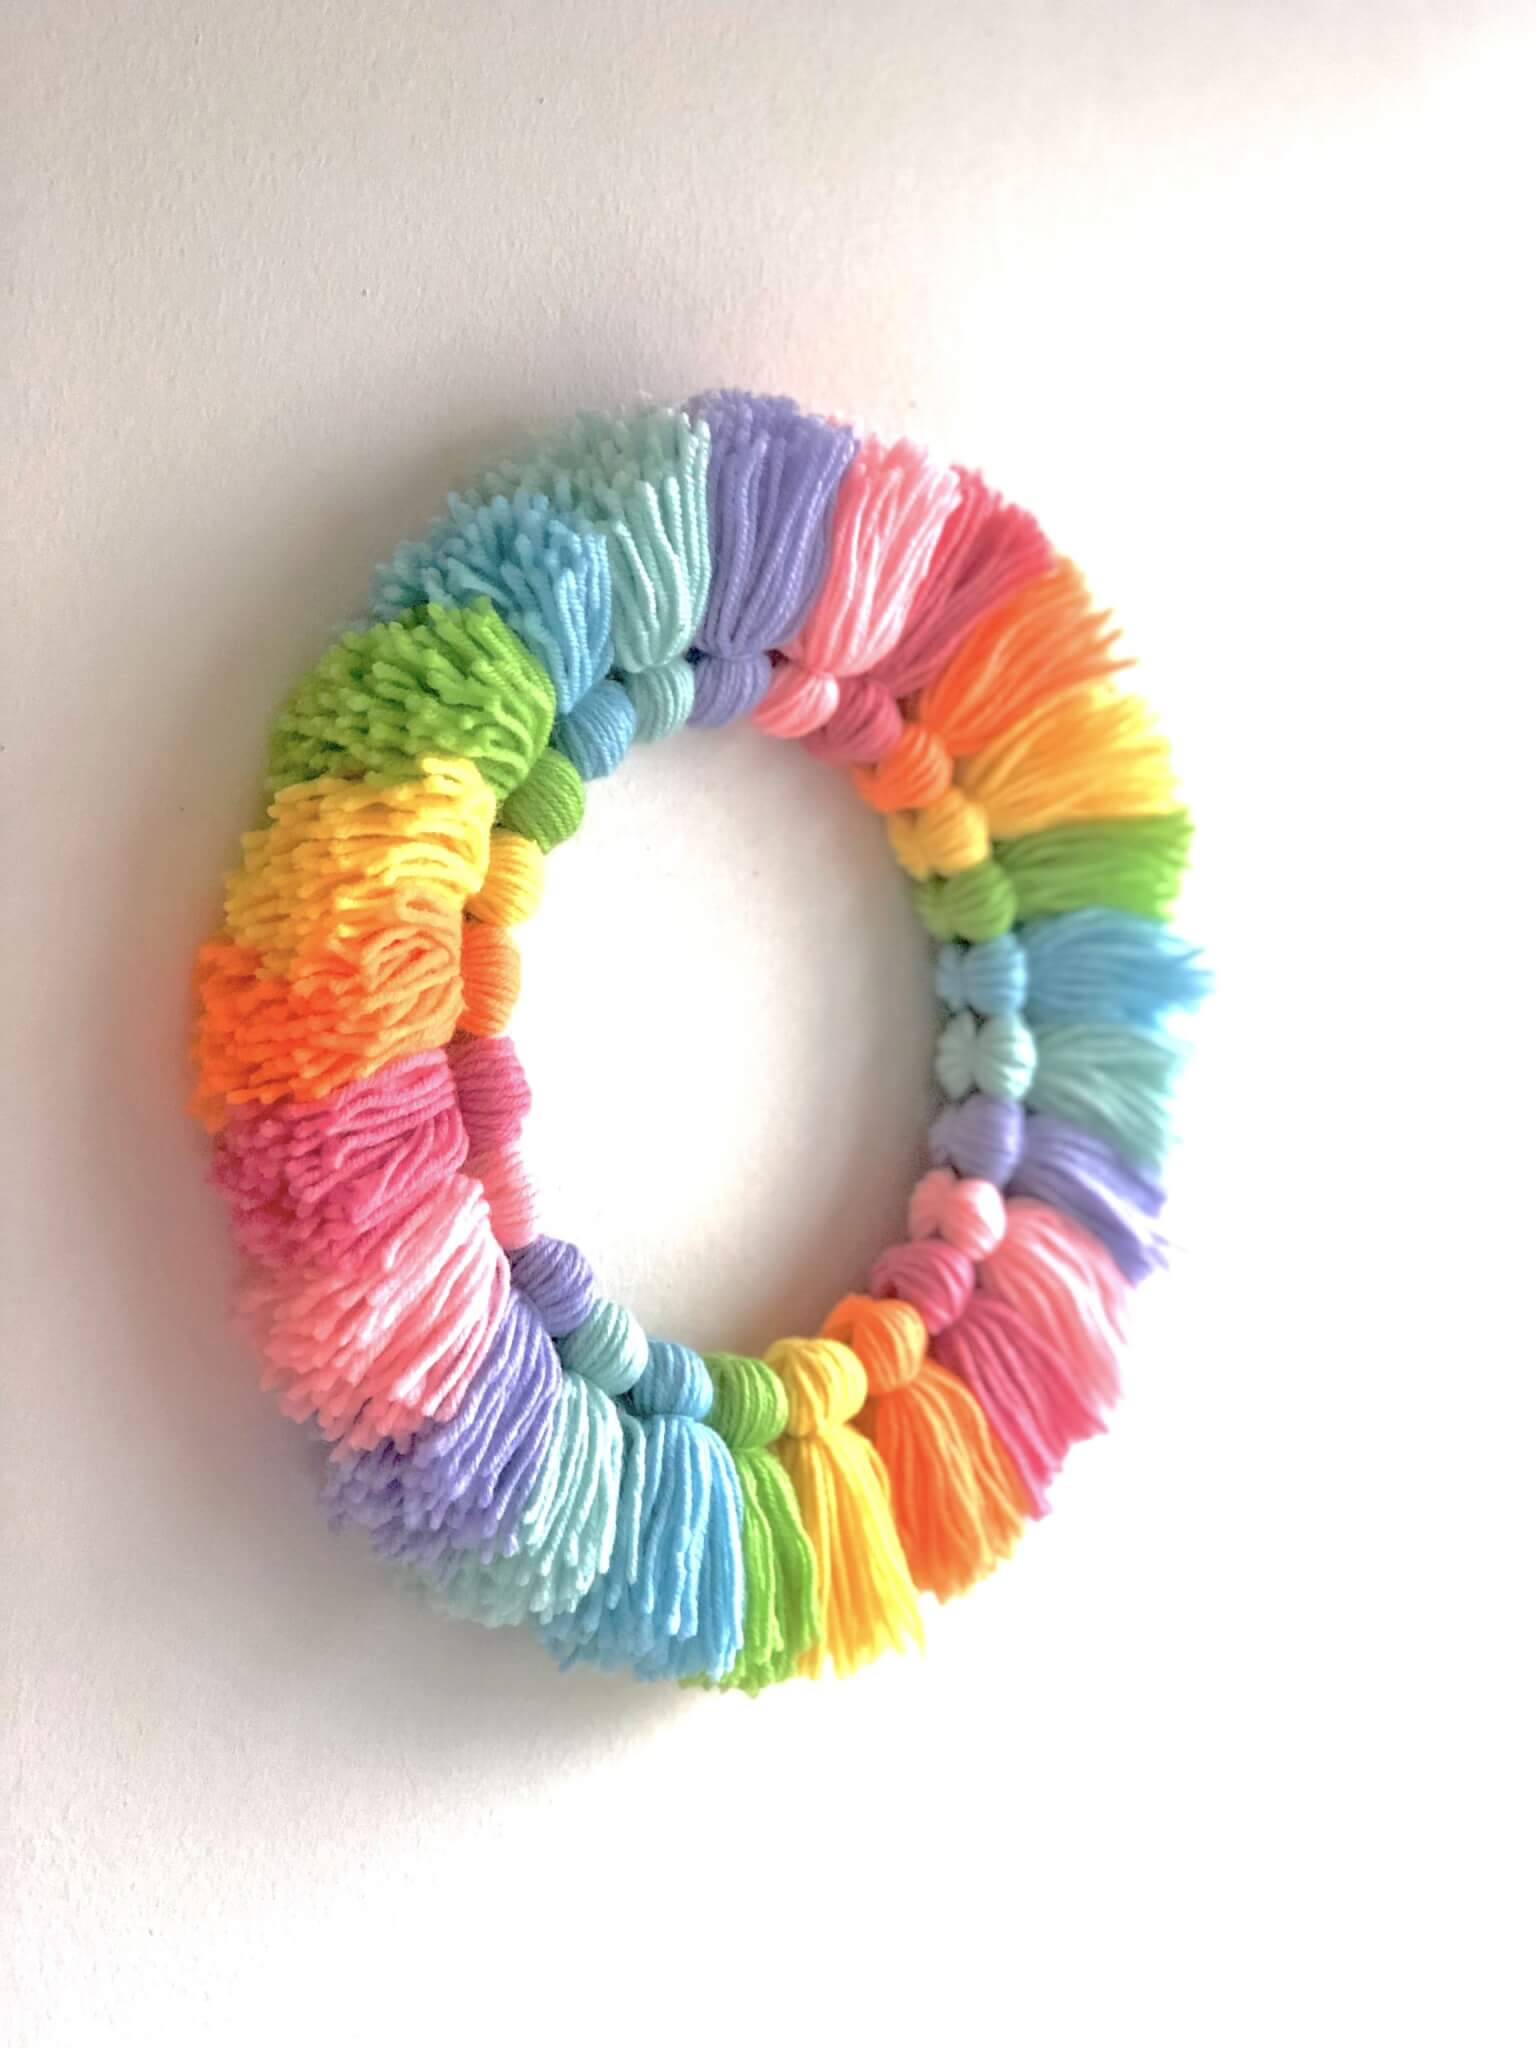 Tassel wreath on the wall